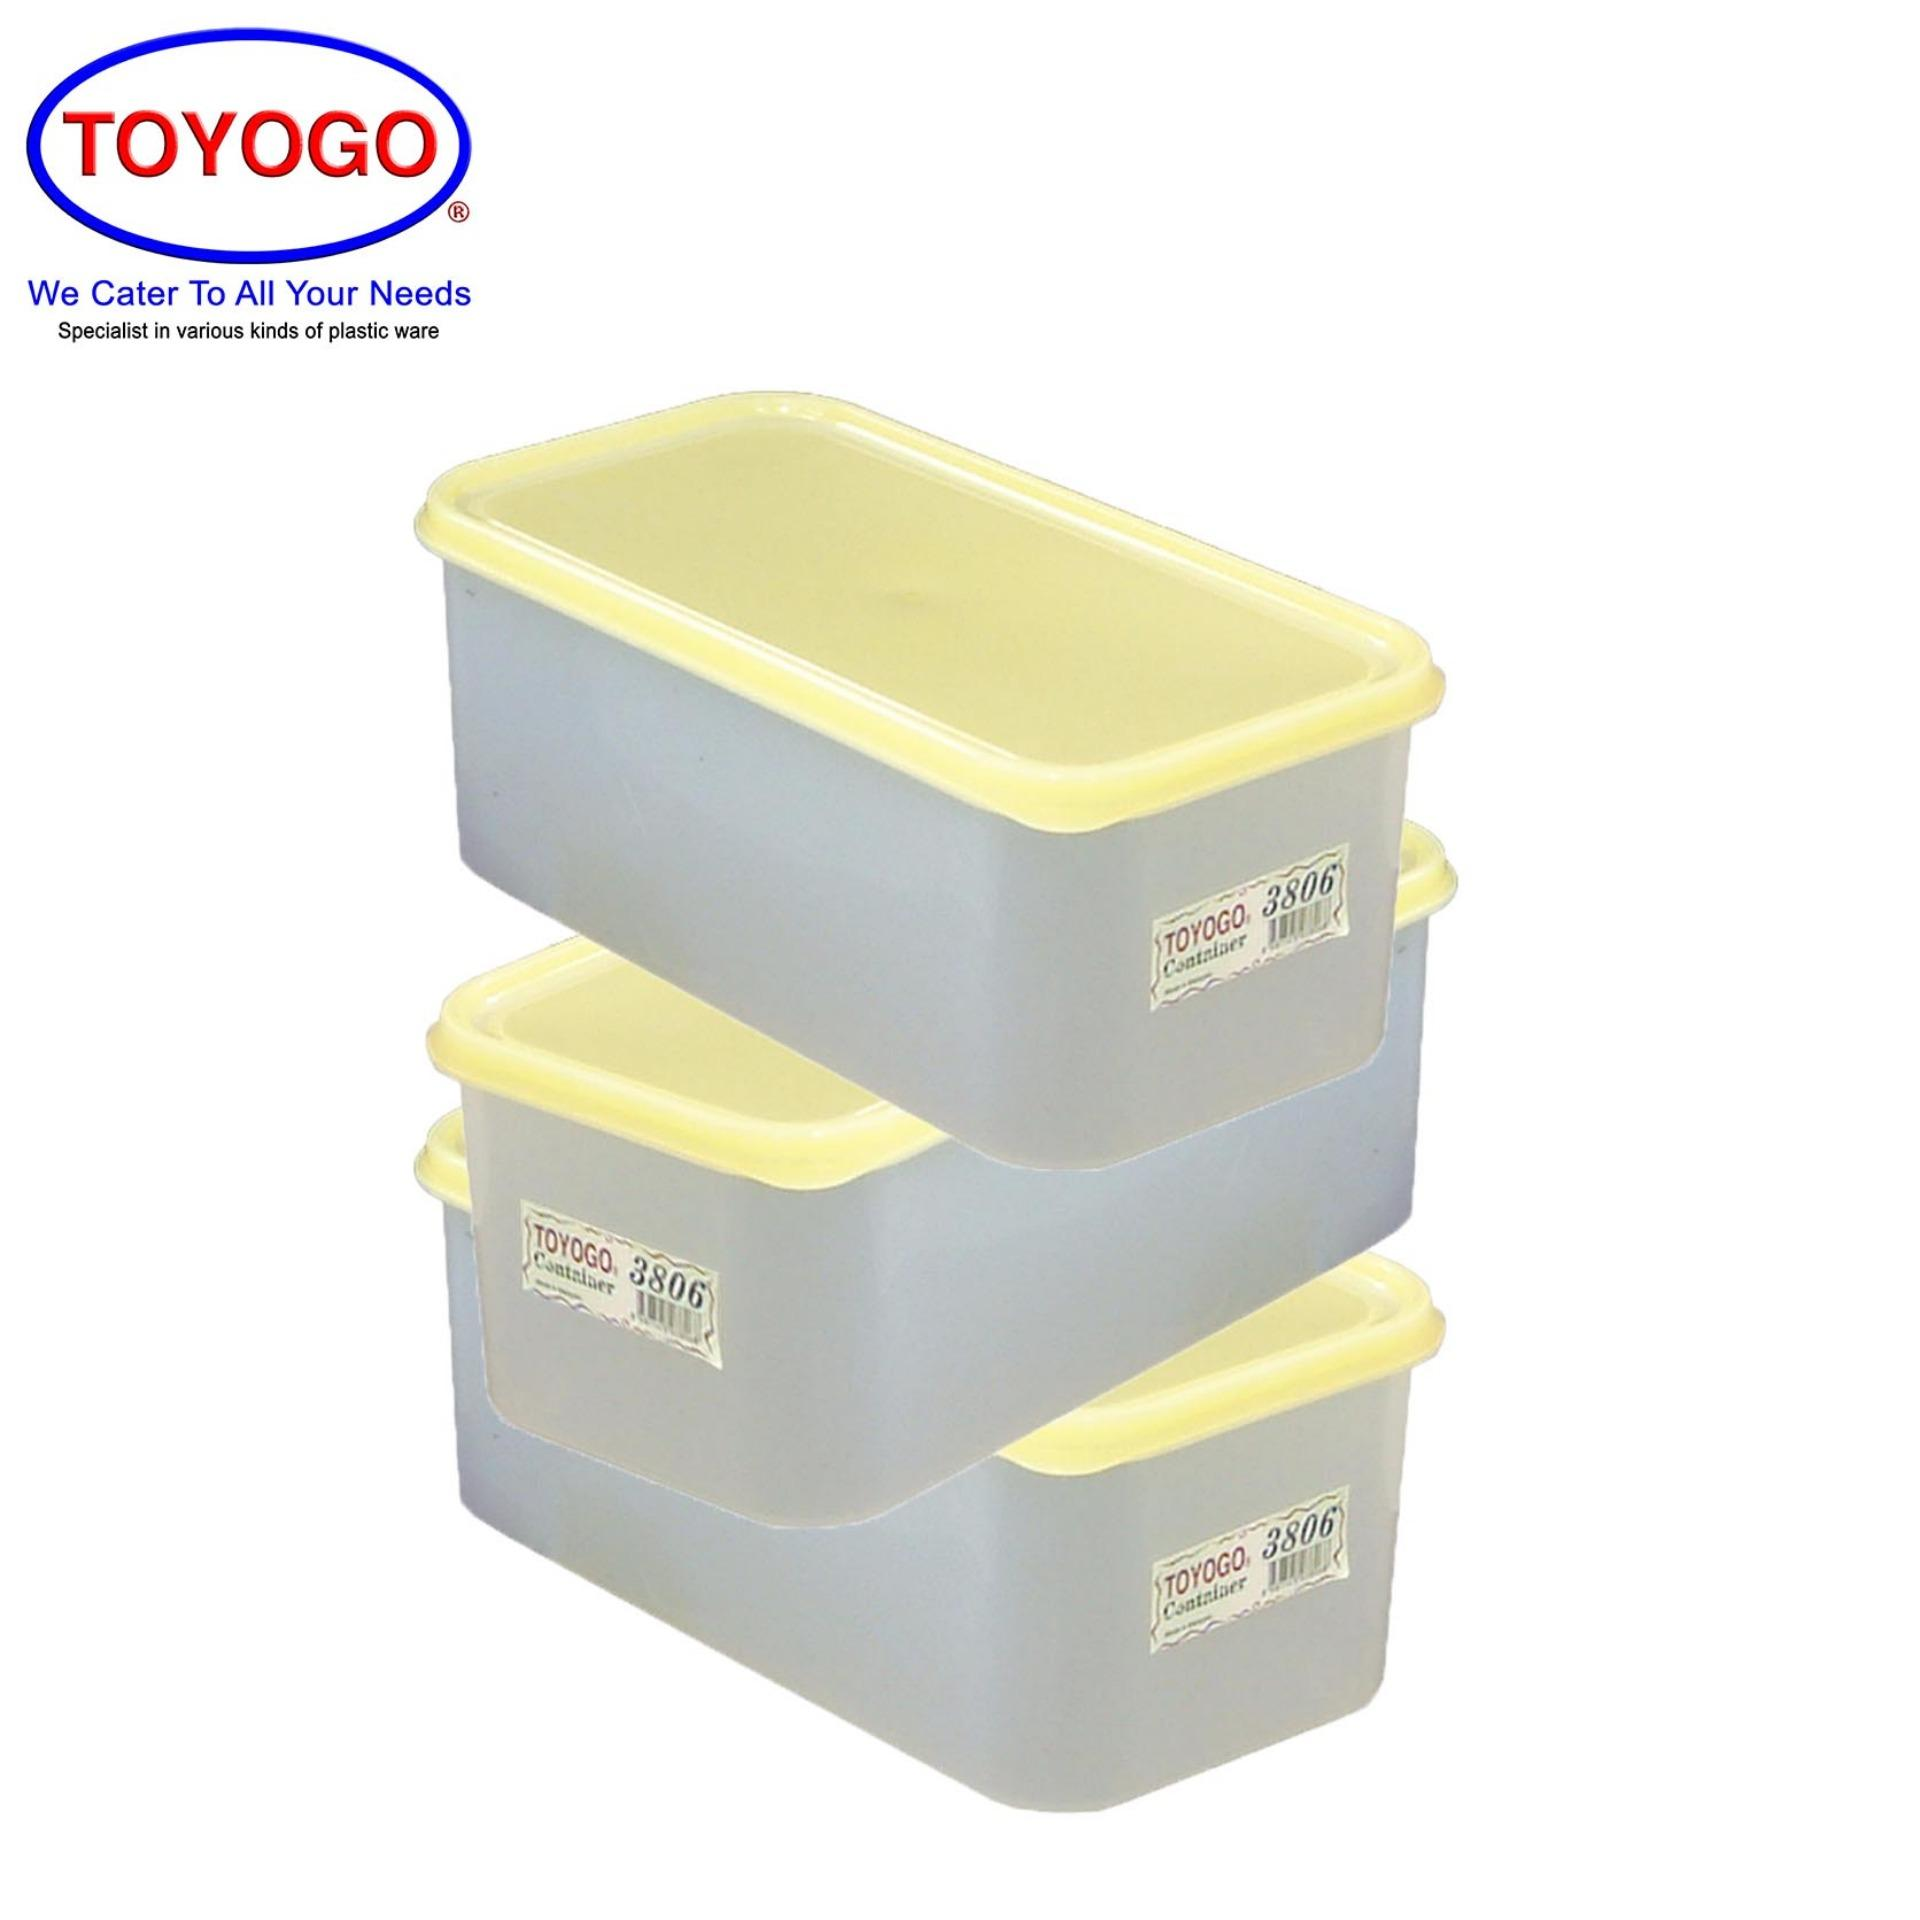 Toyogo Freezer Container (Bundle of 3) (3806)